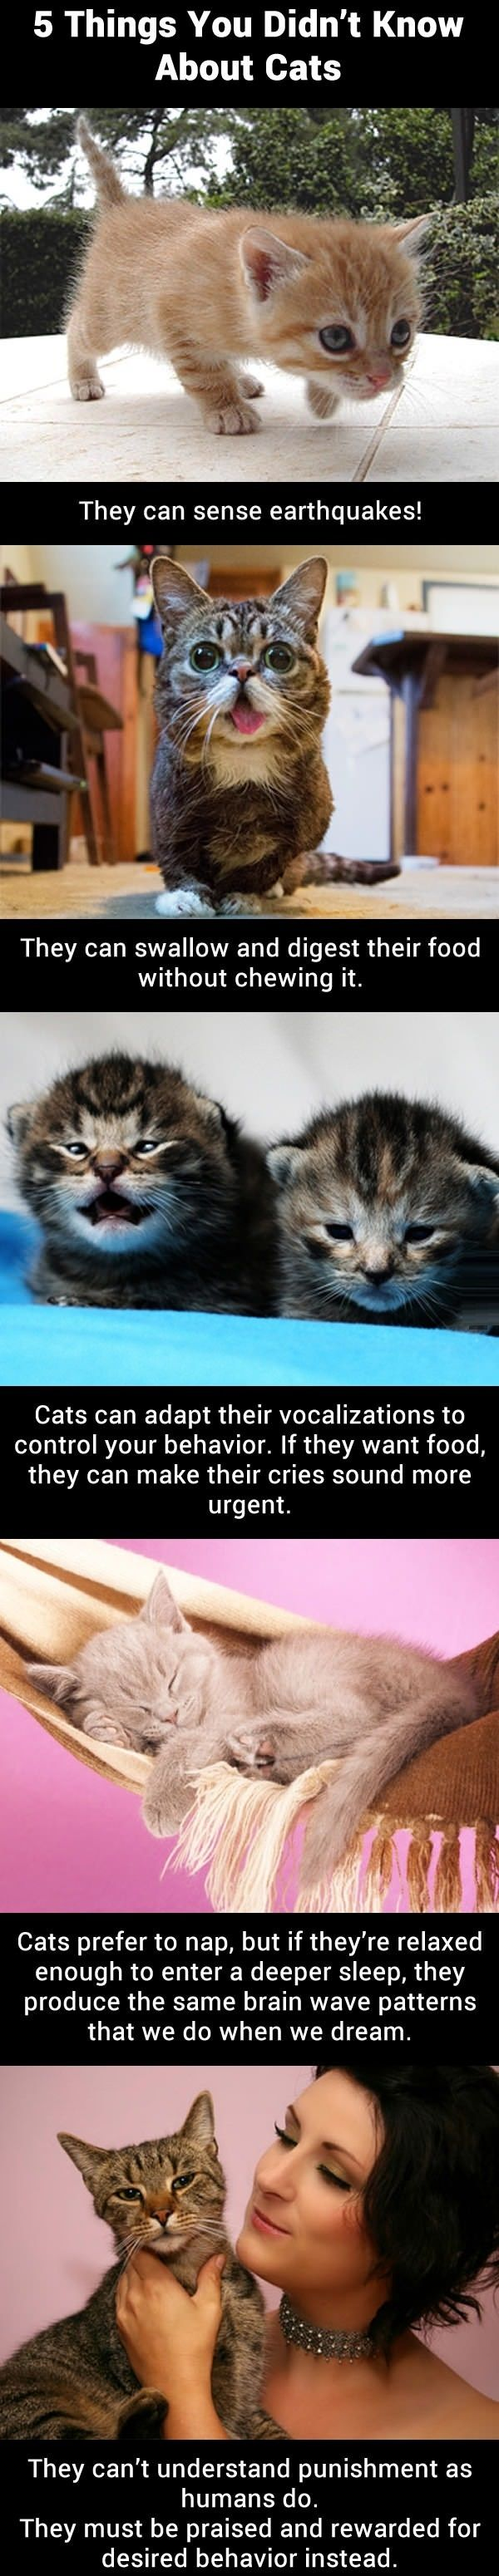 Cat Facts Thanks Pinterest Pinners For Stopping By Viewing Re Pinning Following My Boards Have A Beautiful Day Cats Cat Facts Crazy Cats